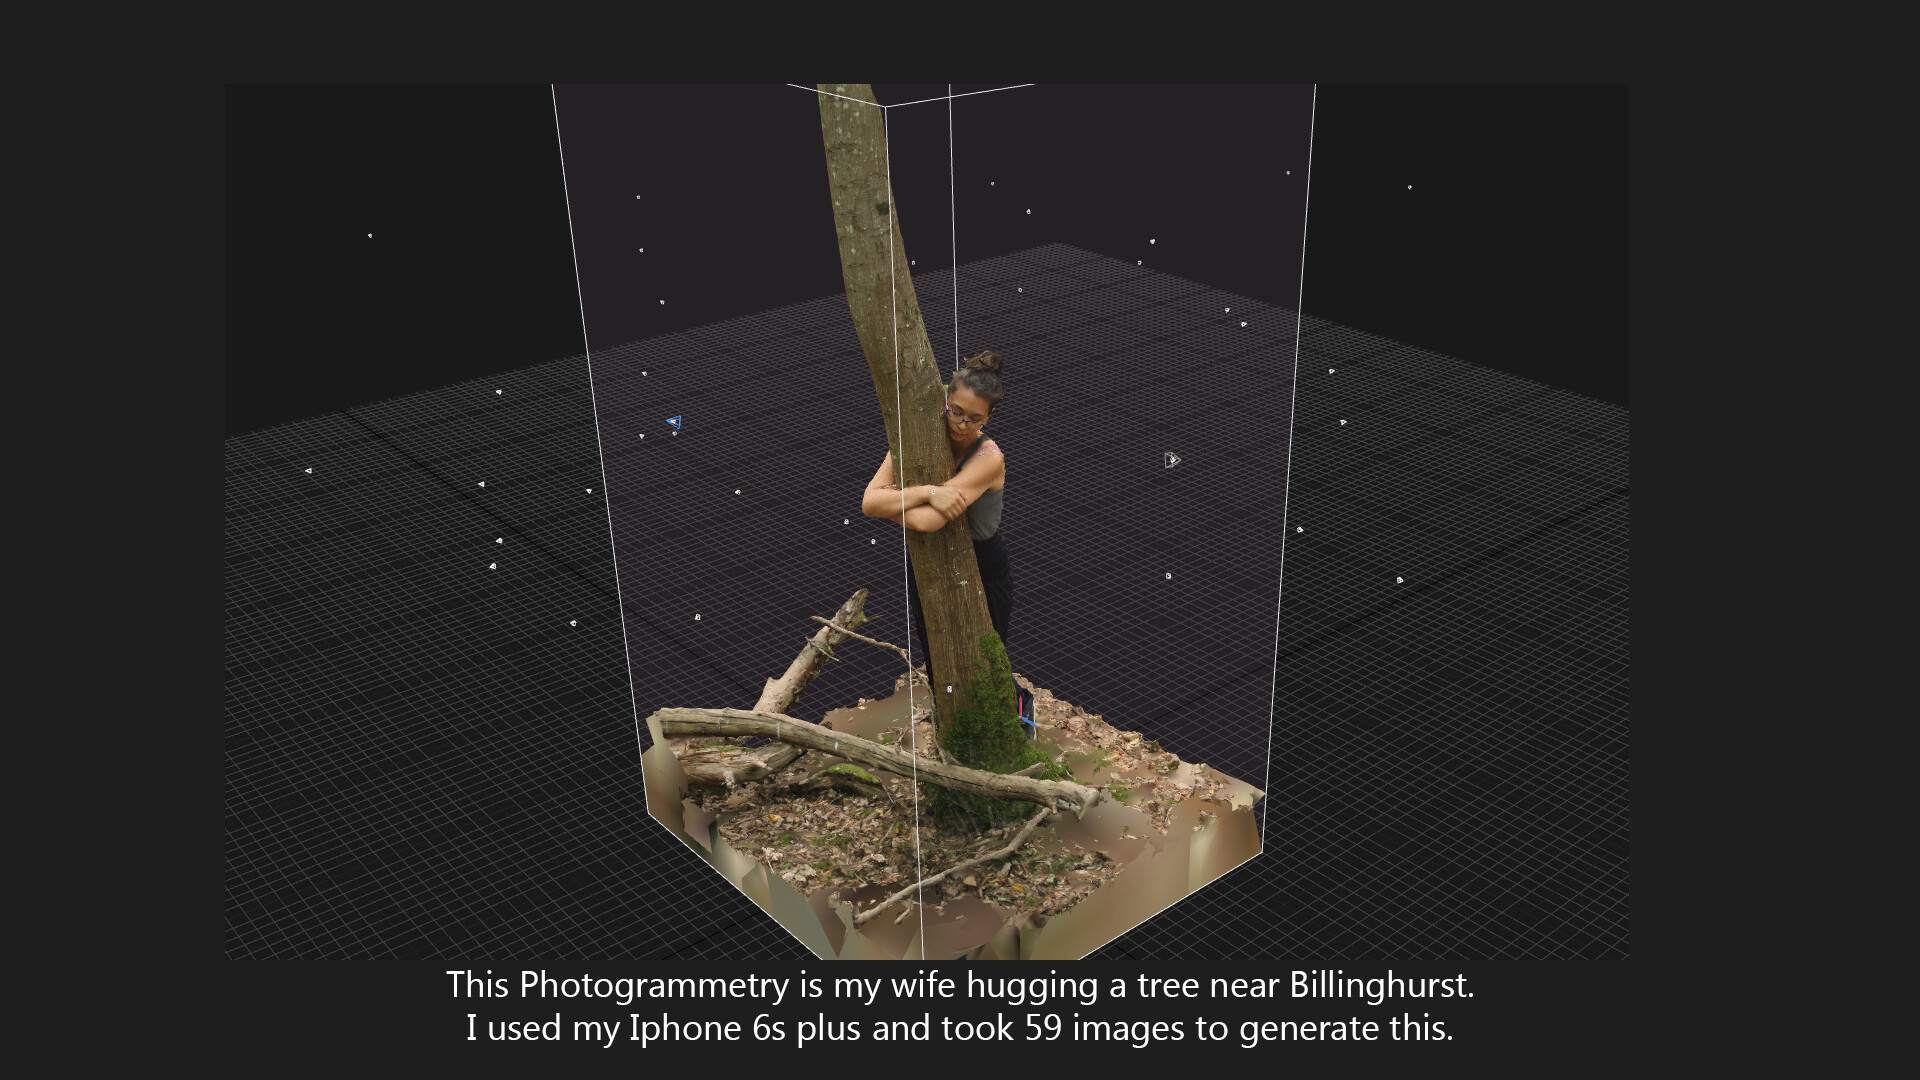 Christopher antoniou hugtrees03